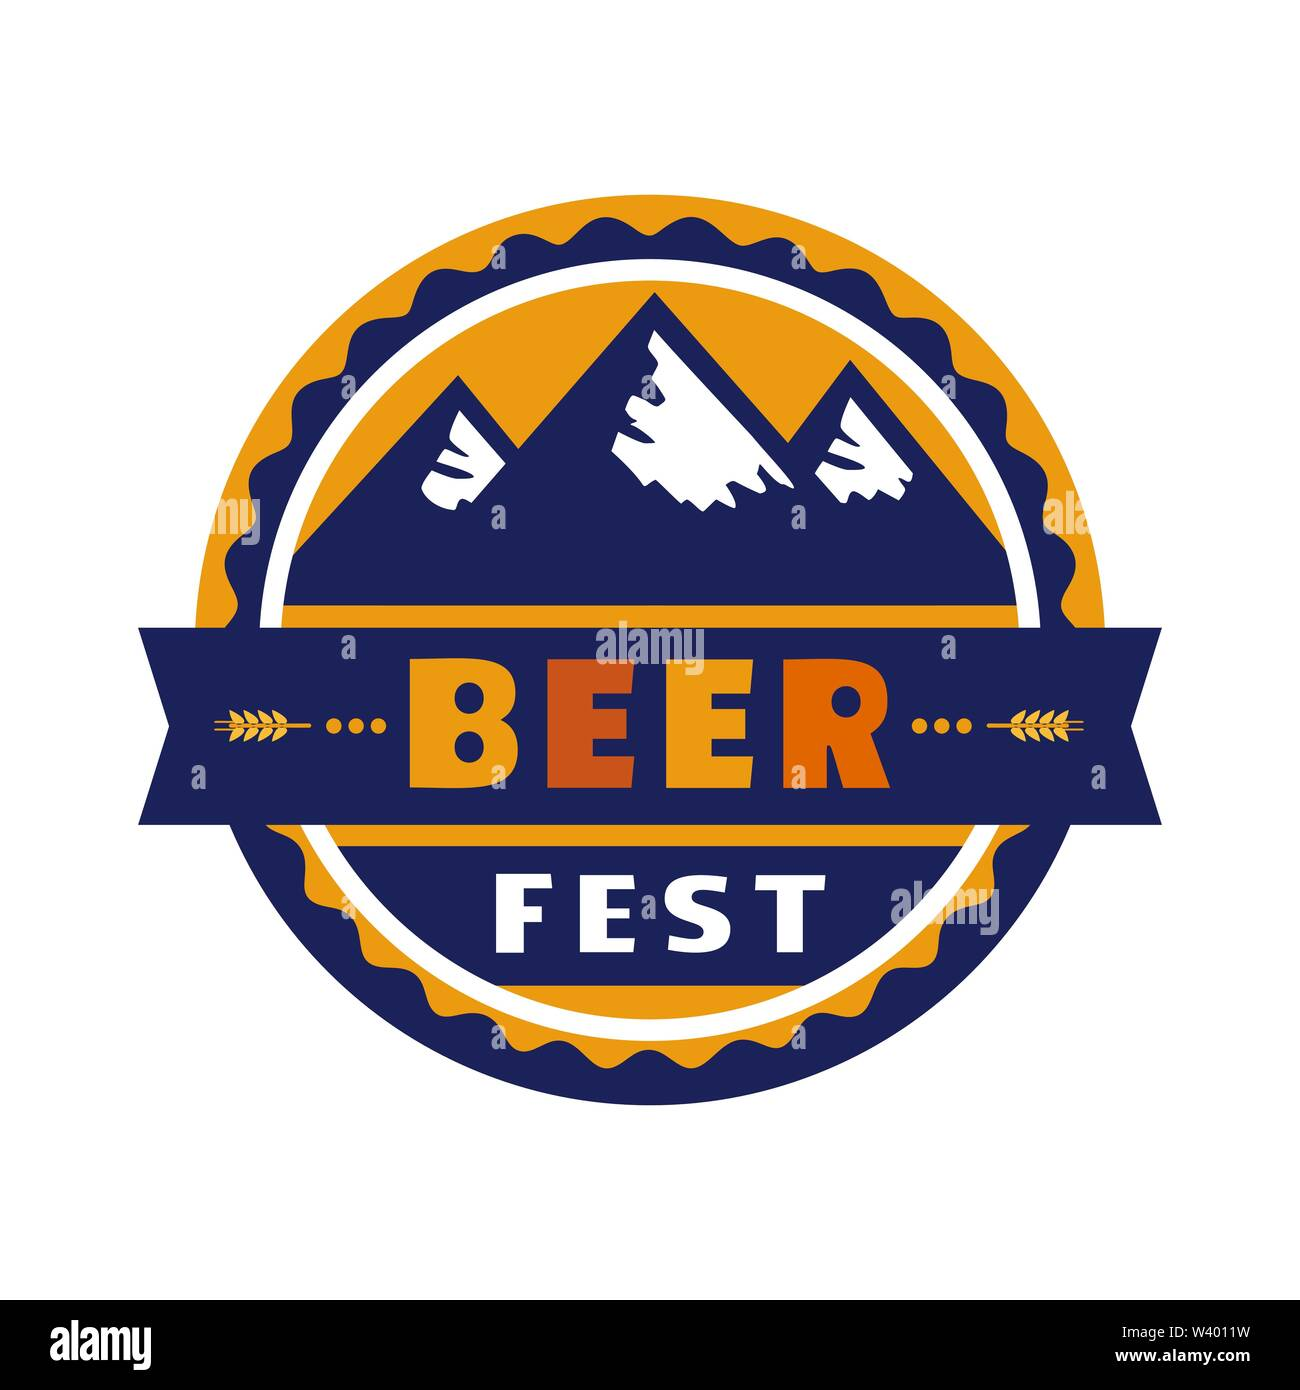 Beer fest hand drawn flat color vector round icon - Stock Image